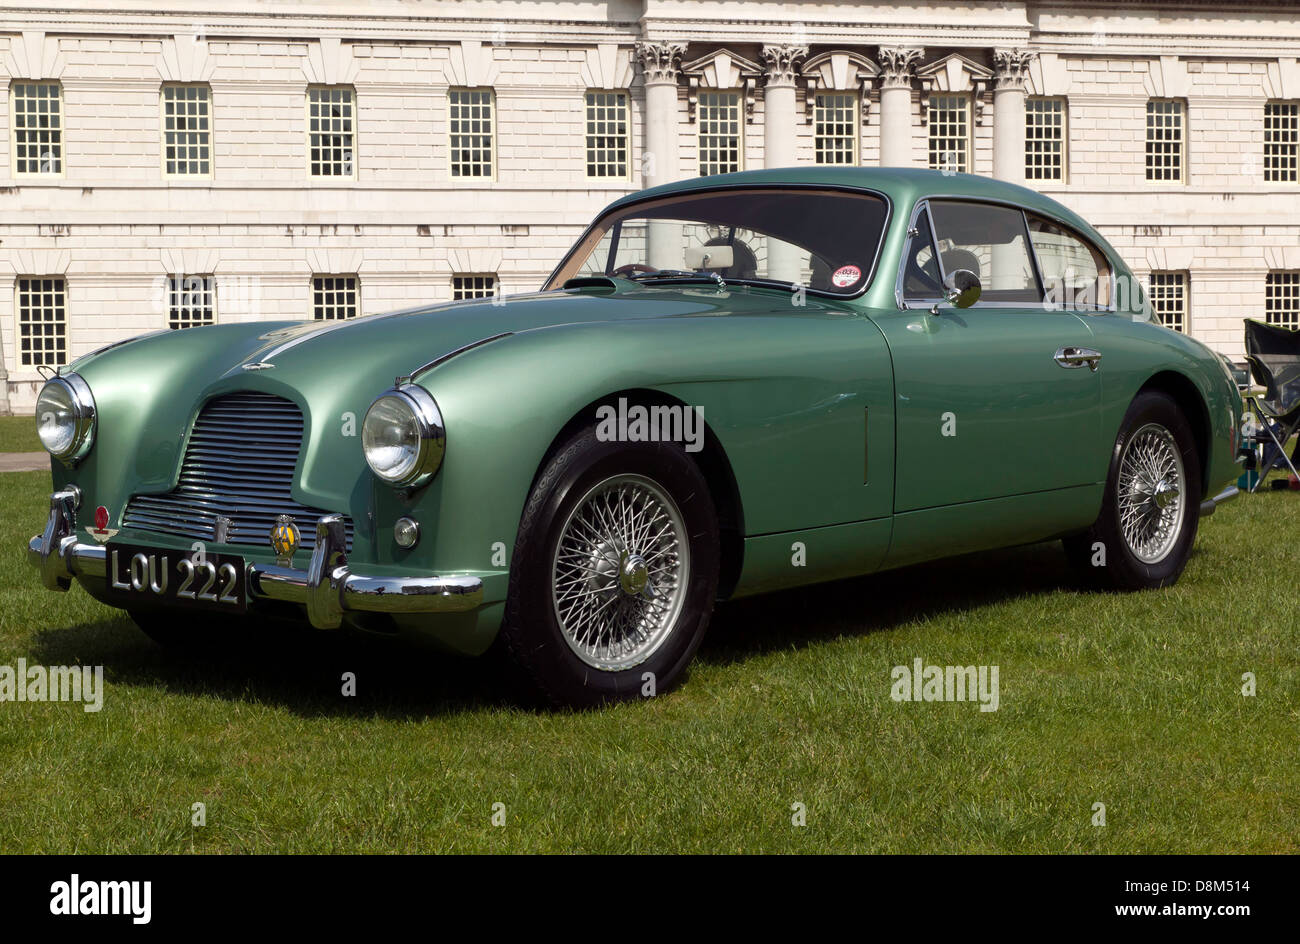 A Beautiful Example Of A Vintage Aston Martin Db2 On Display At The Stock Photo Alamy